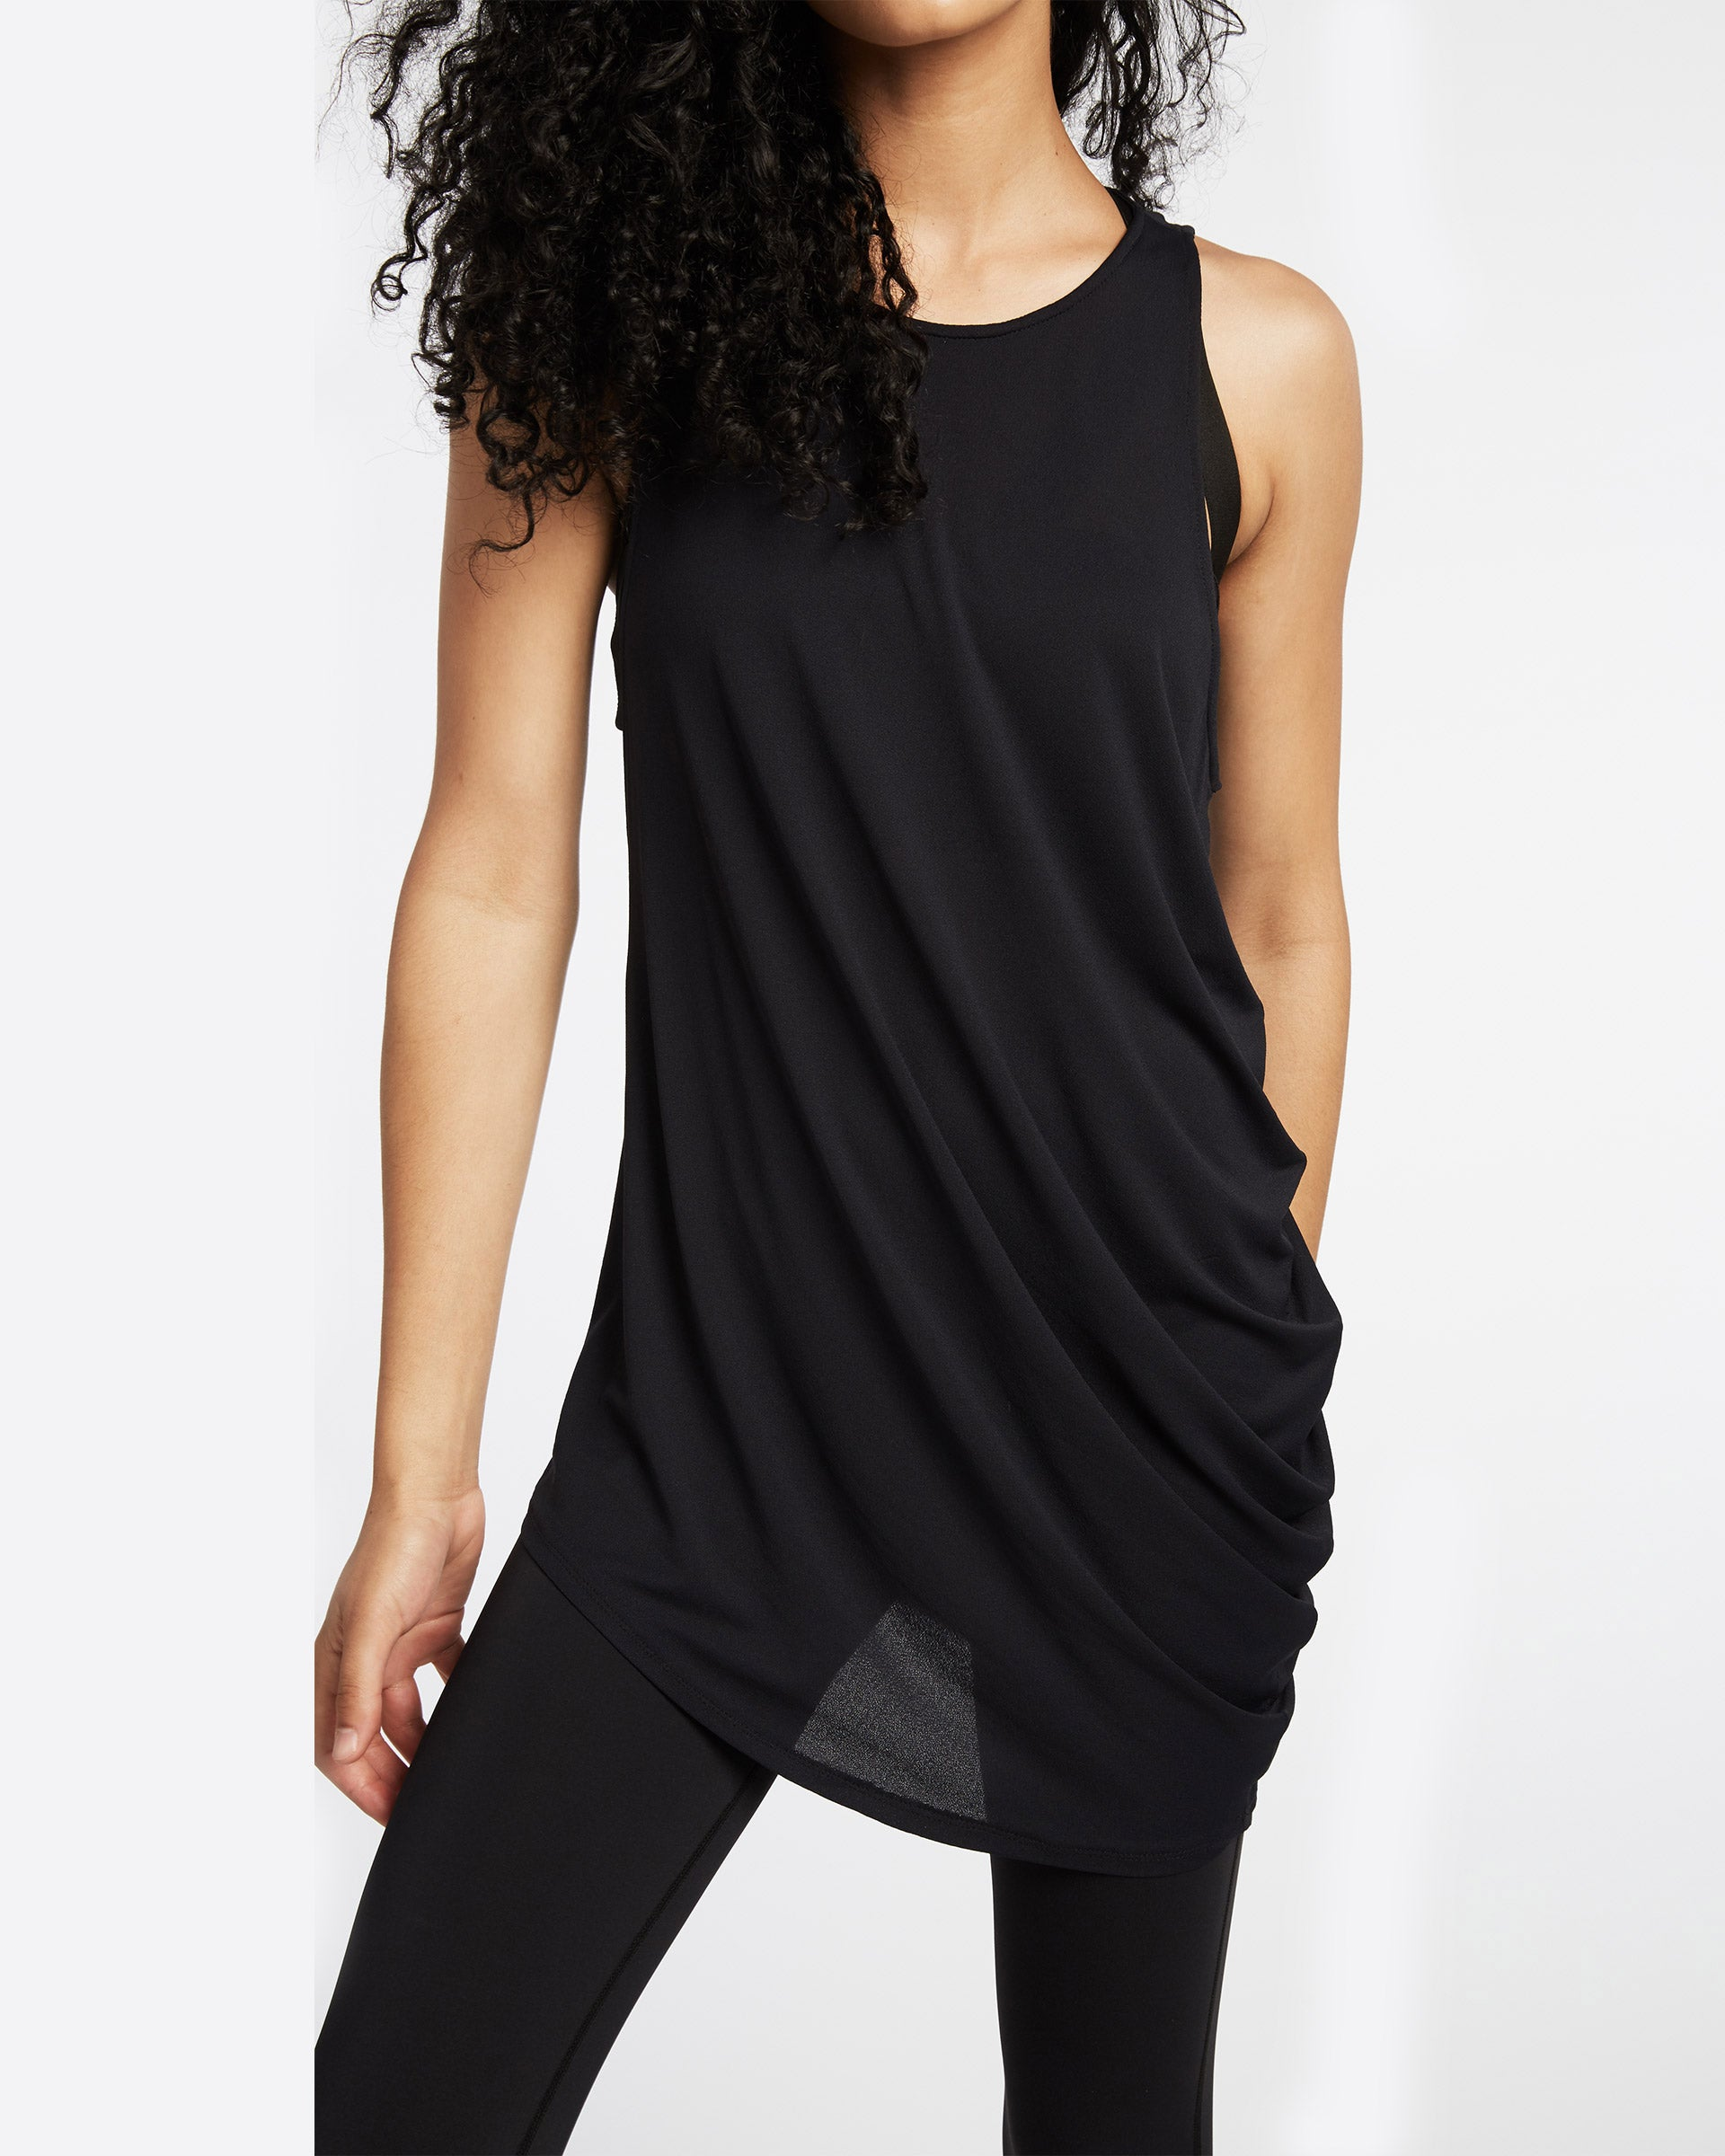 Tidal Top - Black